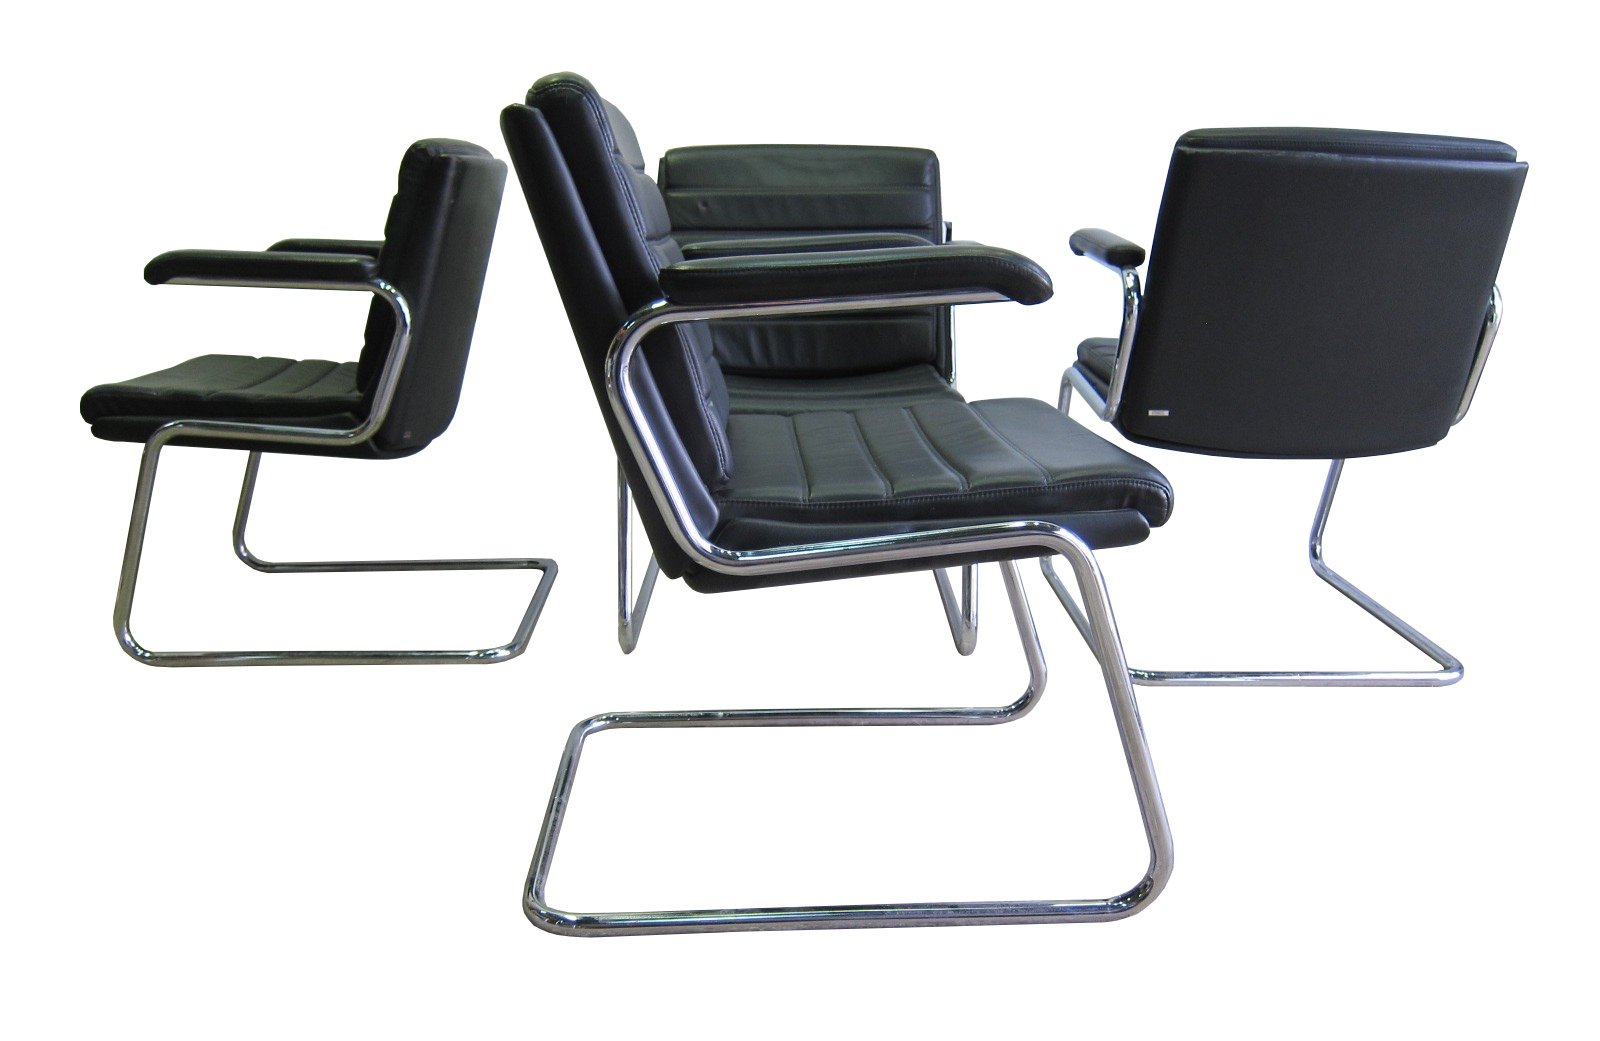 Vintage Leather Chrome Office Chairs By Drabert